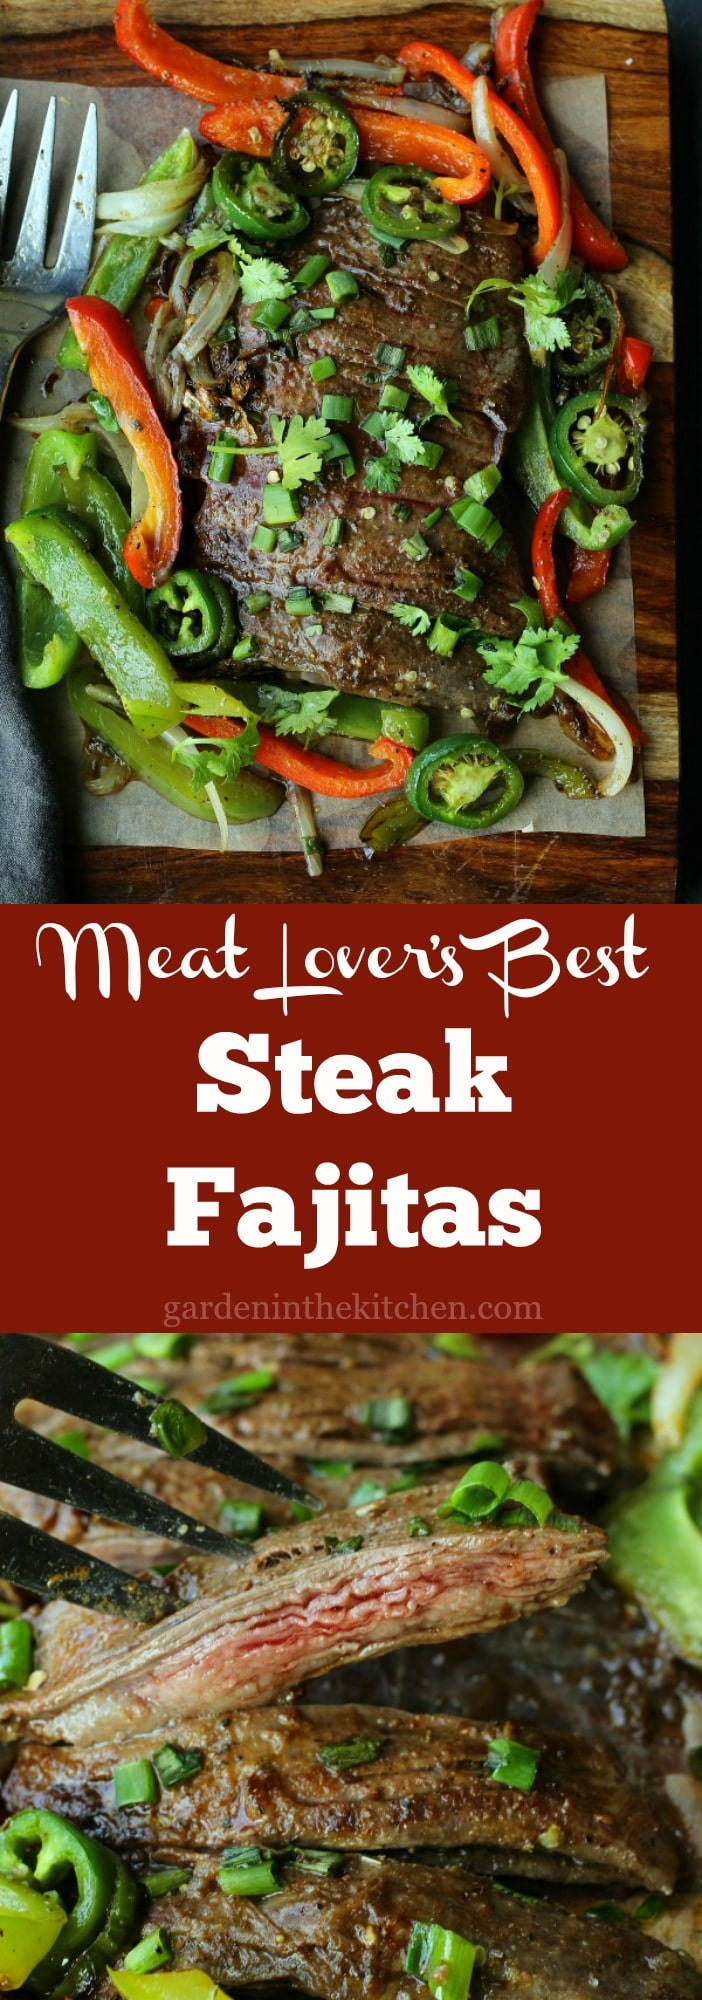 The BEST Steak Fajitas you will ever eat! Juicy, tender, spicy and flavored to perfection   gardeninthekitchen.com